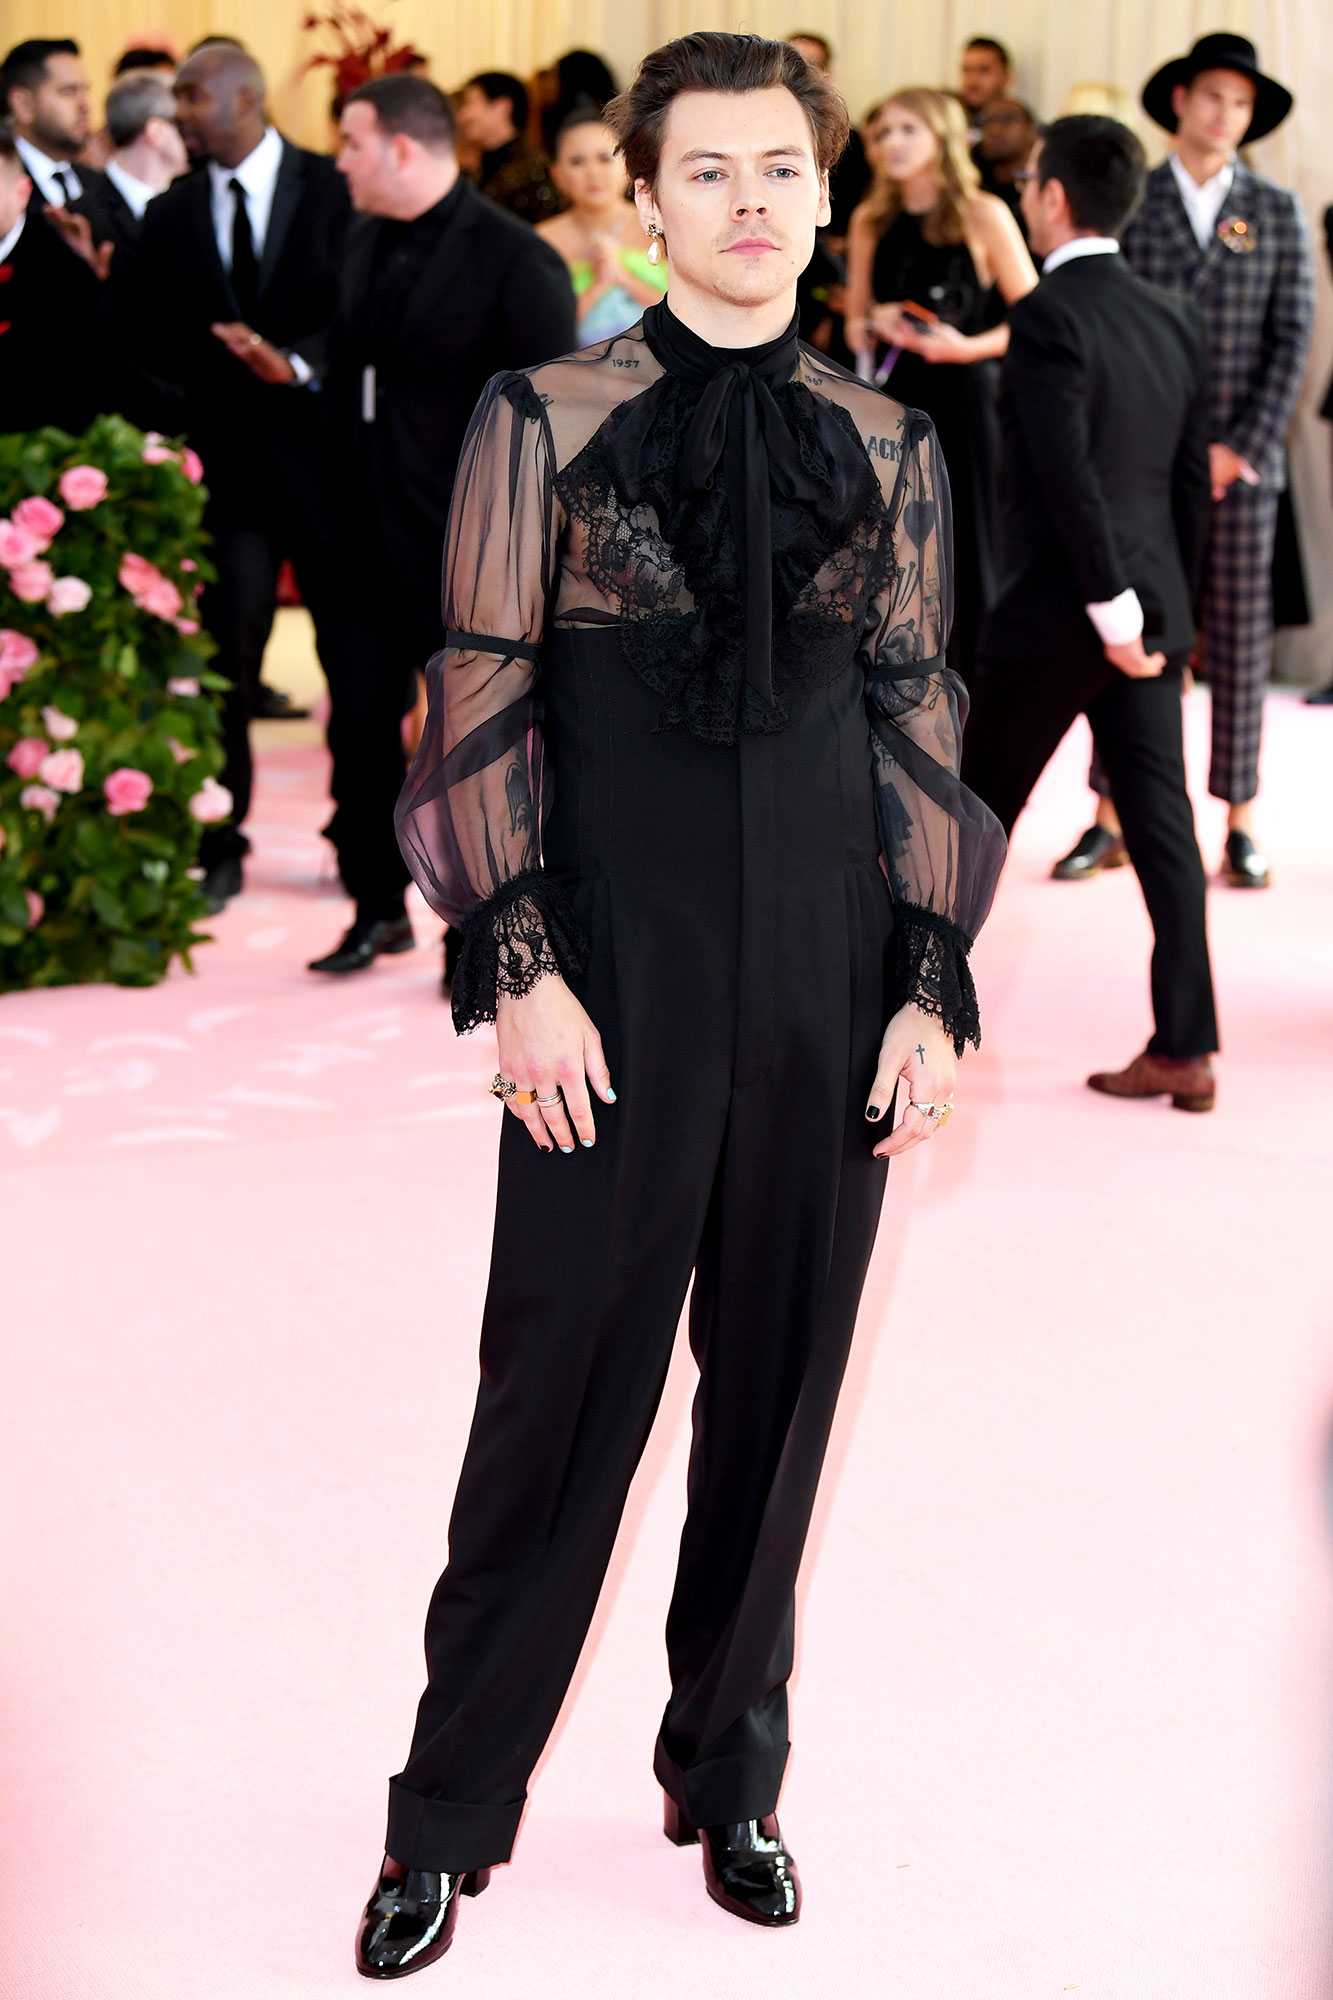 Harry Styles Got His Ears Pierced for the Met Gala - Harry Styles attends The 2019 Met Gala Celebrating Camp: Notes On Fashion at The Metropolitan Museum of Art on May 06, 2019 in New York City.